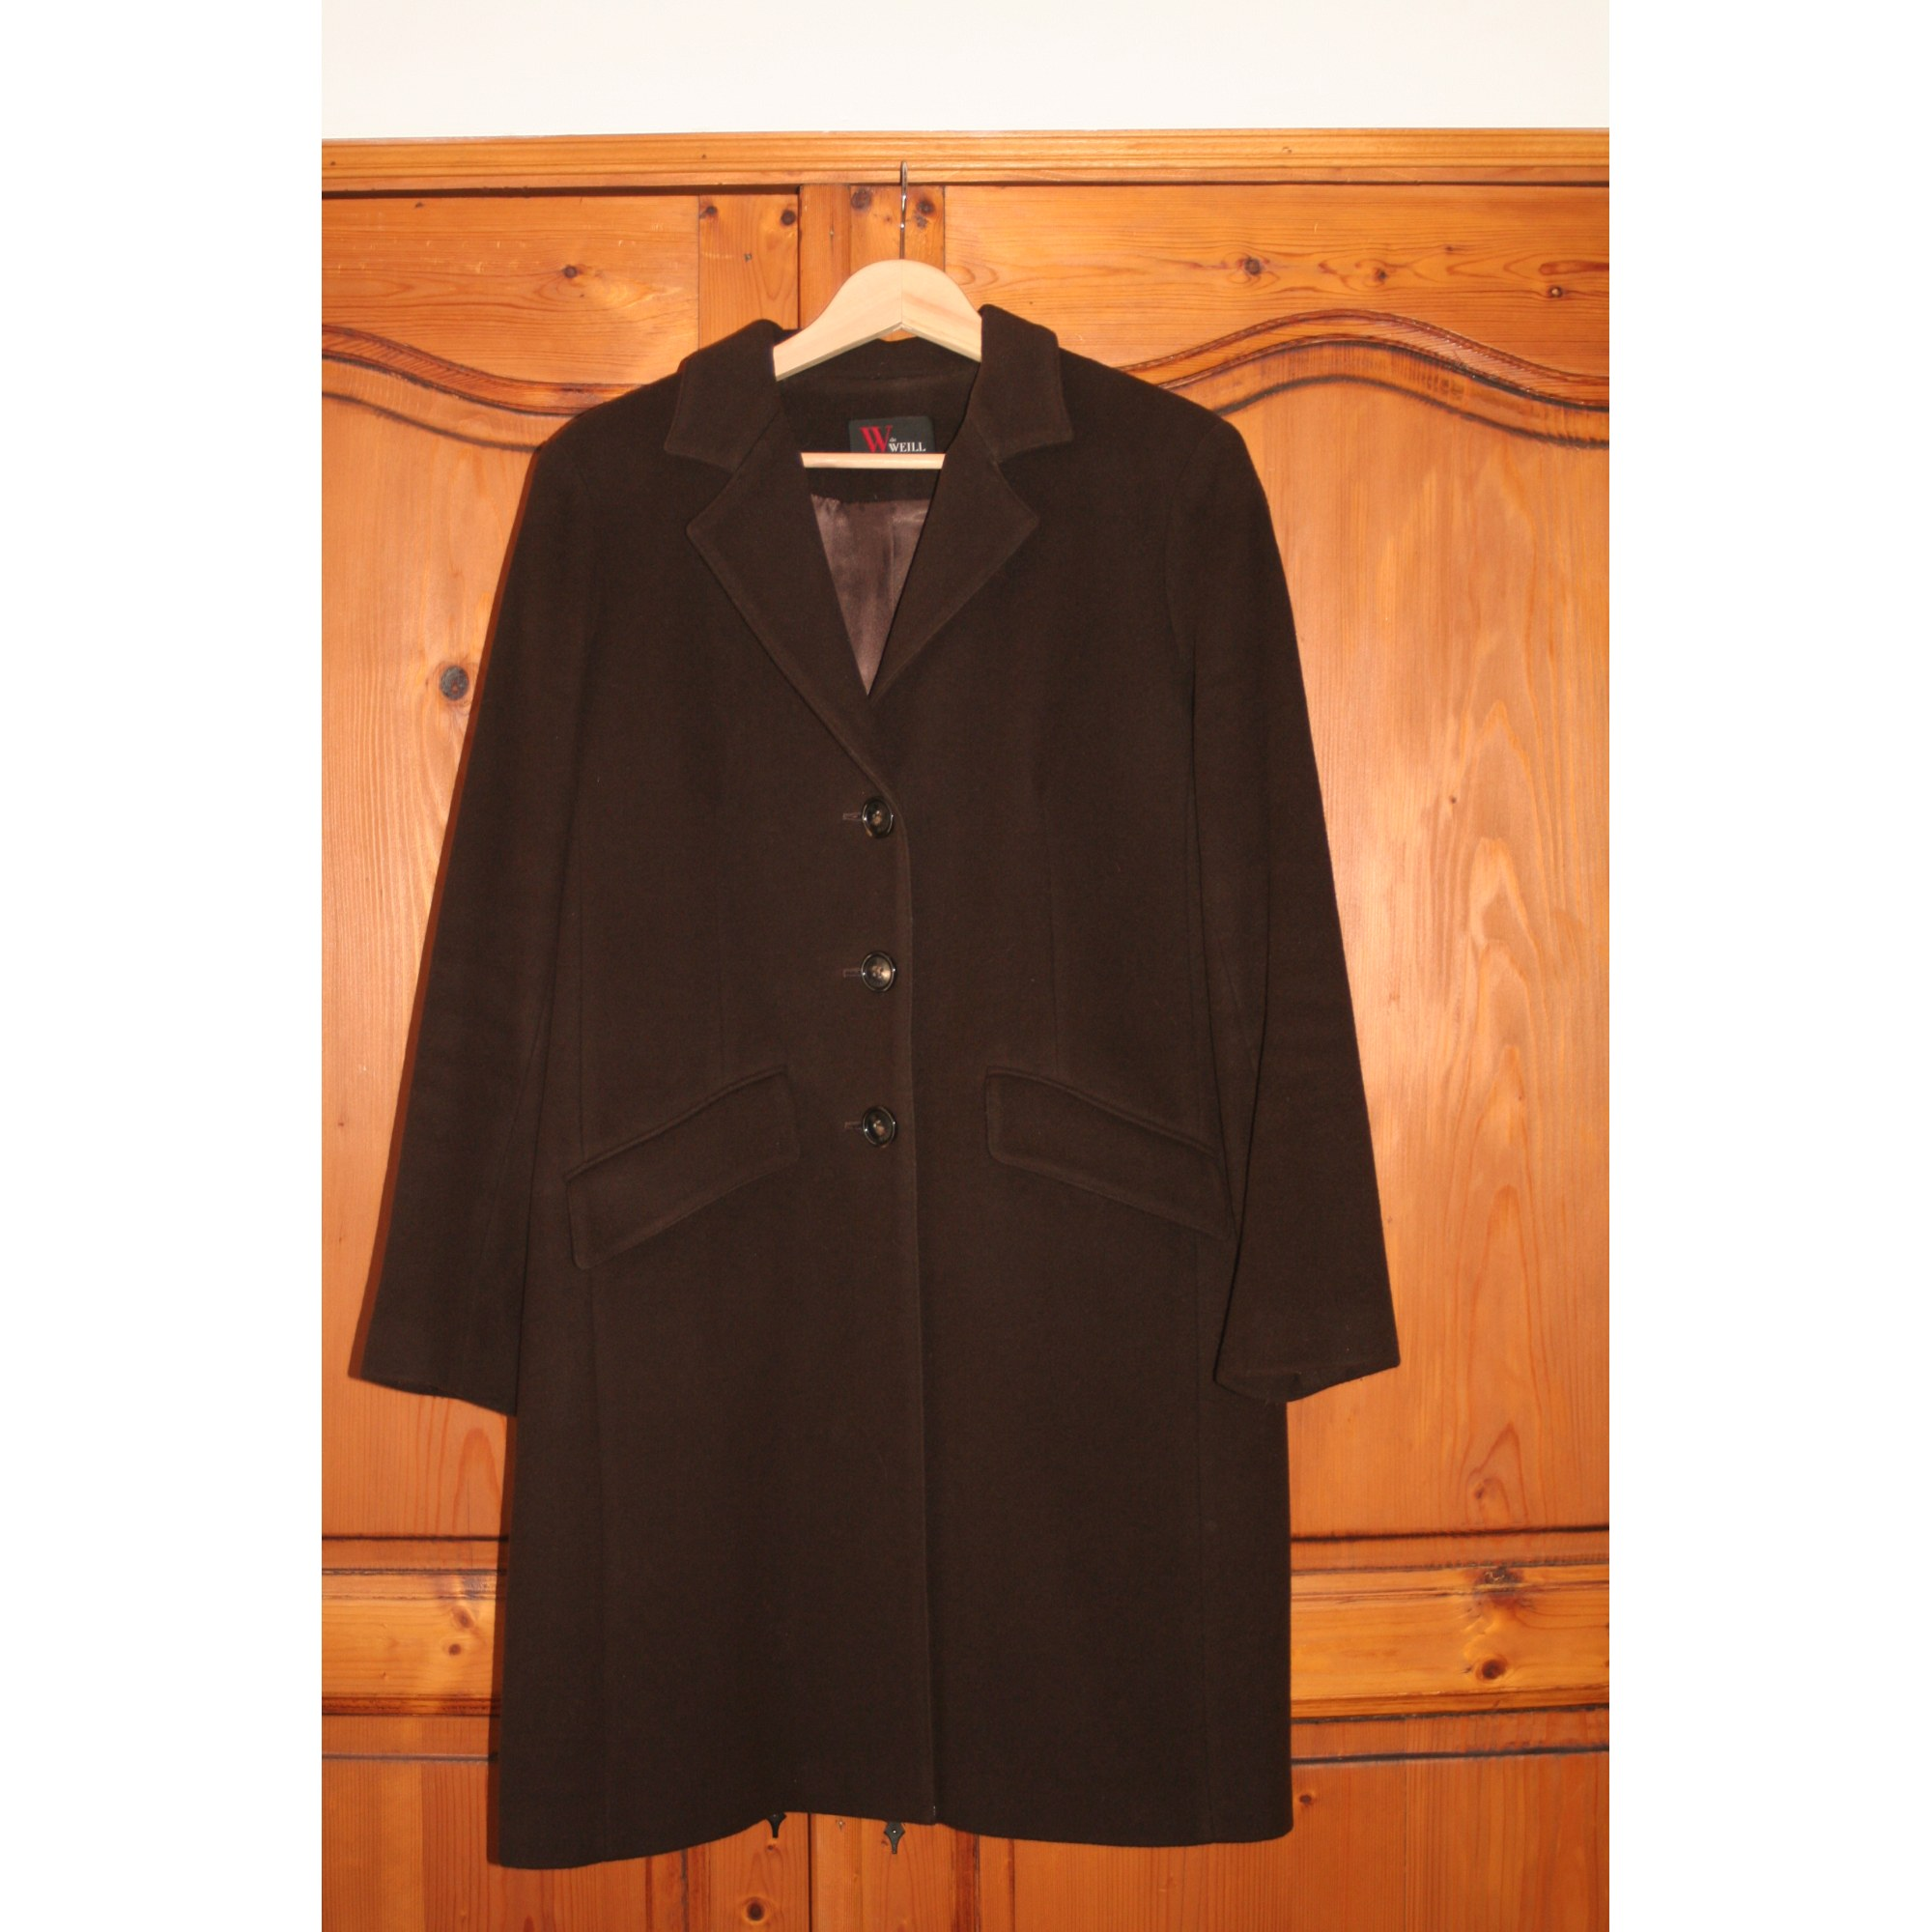 Manteau WEILL Marron